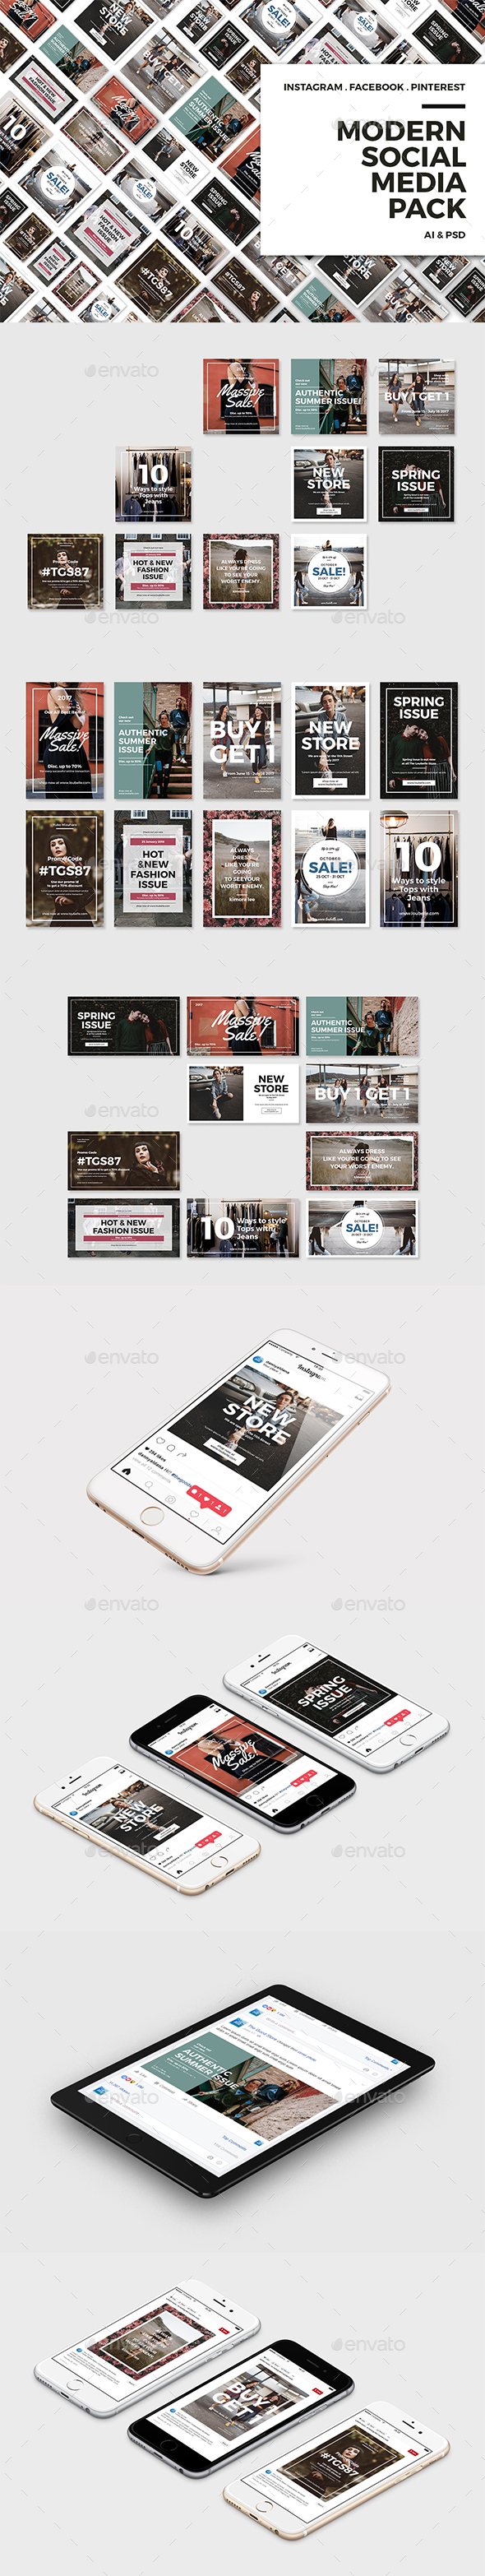 Modern Social Media Pack - Social Media Web Elements